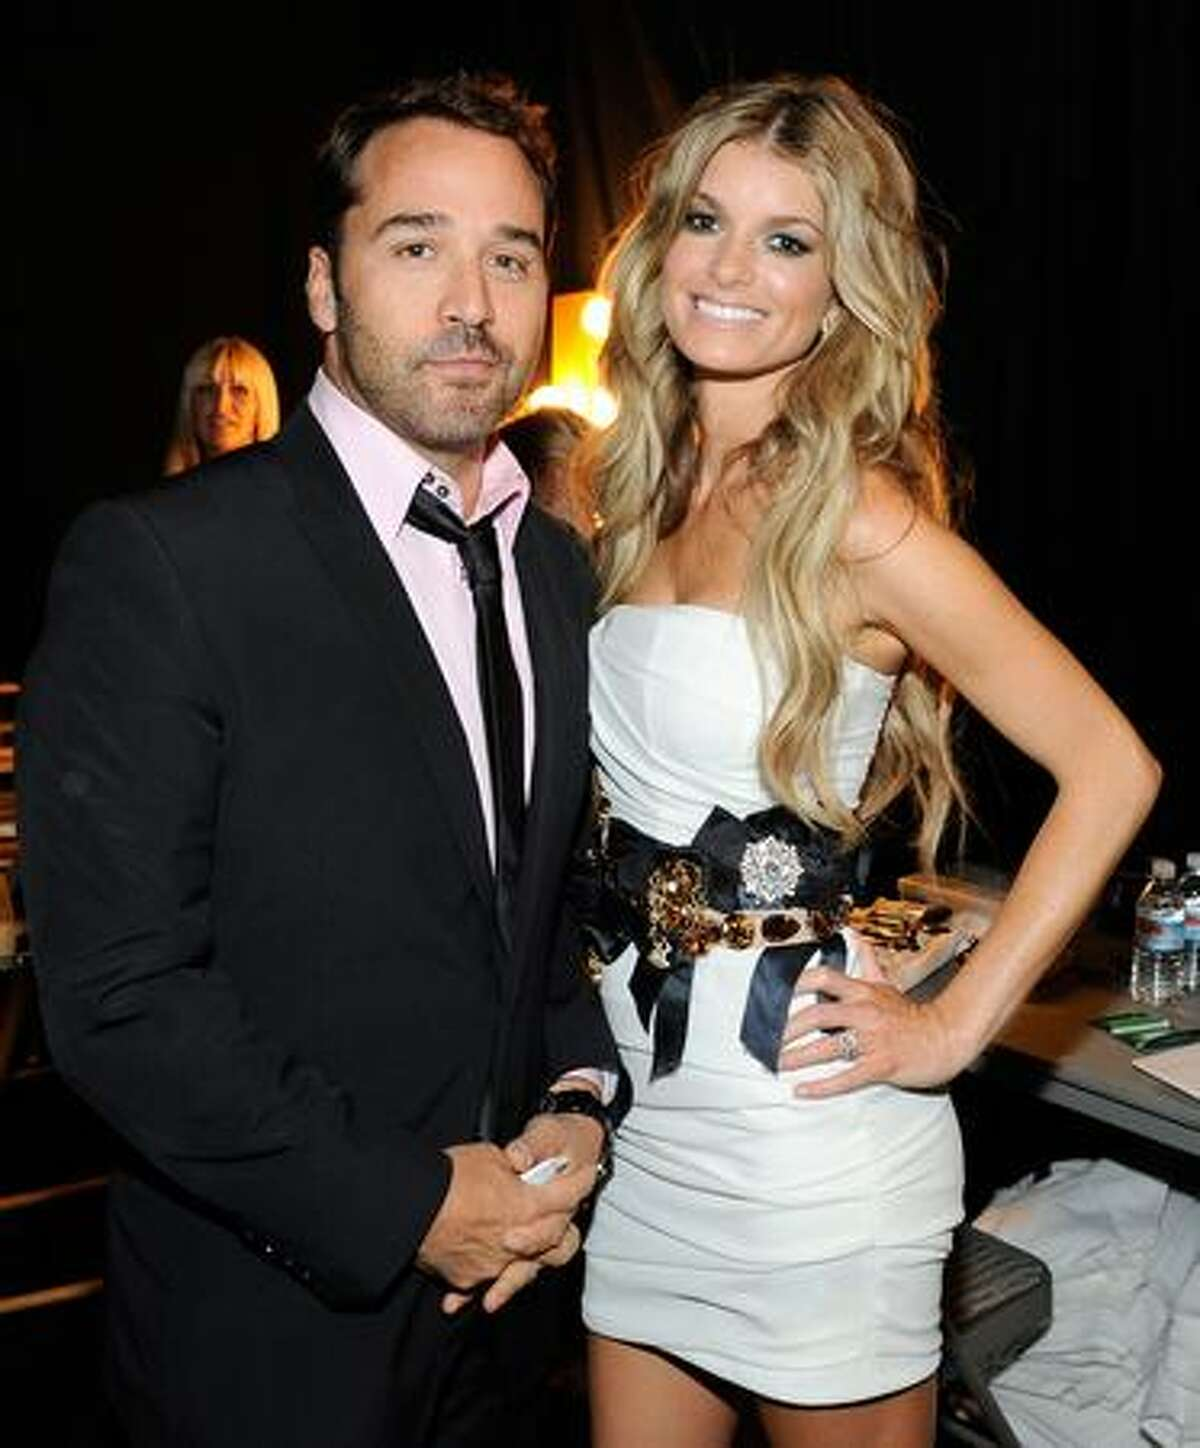 Actor Jeremy Piven (left) and model Marisa Miller pose backstage during the 2009 ESPY awards held at Nokia Theatre LA Live in Los Angeles on Wednesday, July 15, 2009. The 17th annual ESPYs will air on Sunday, July 19 at 6 p.m. PDT on ESPN.